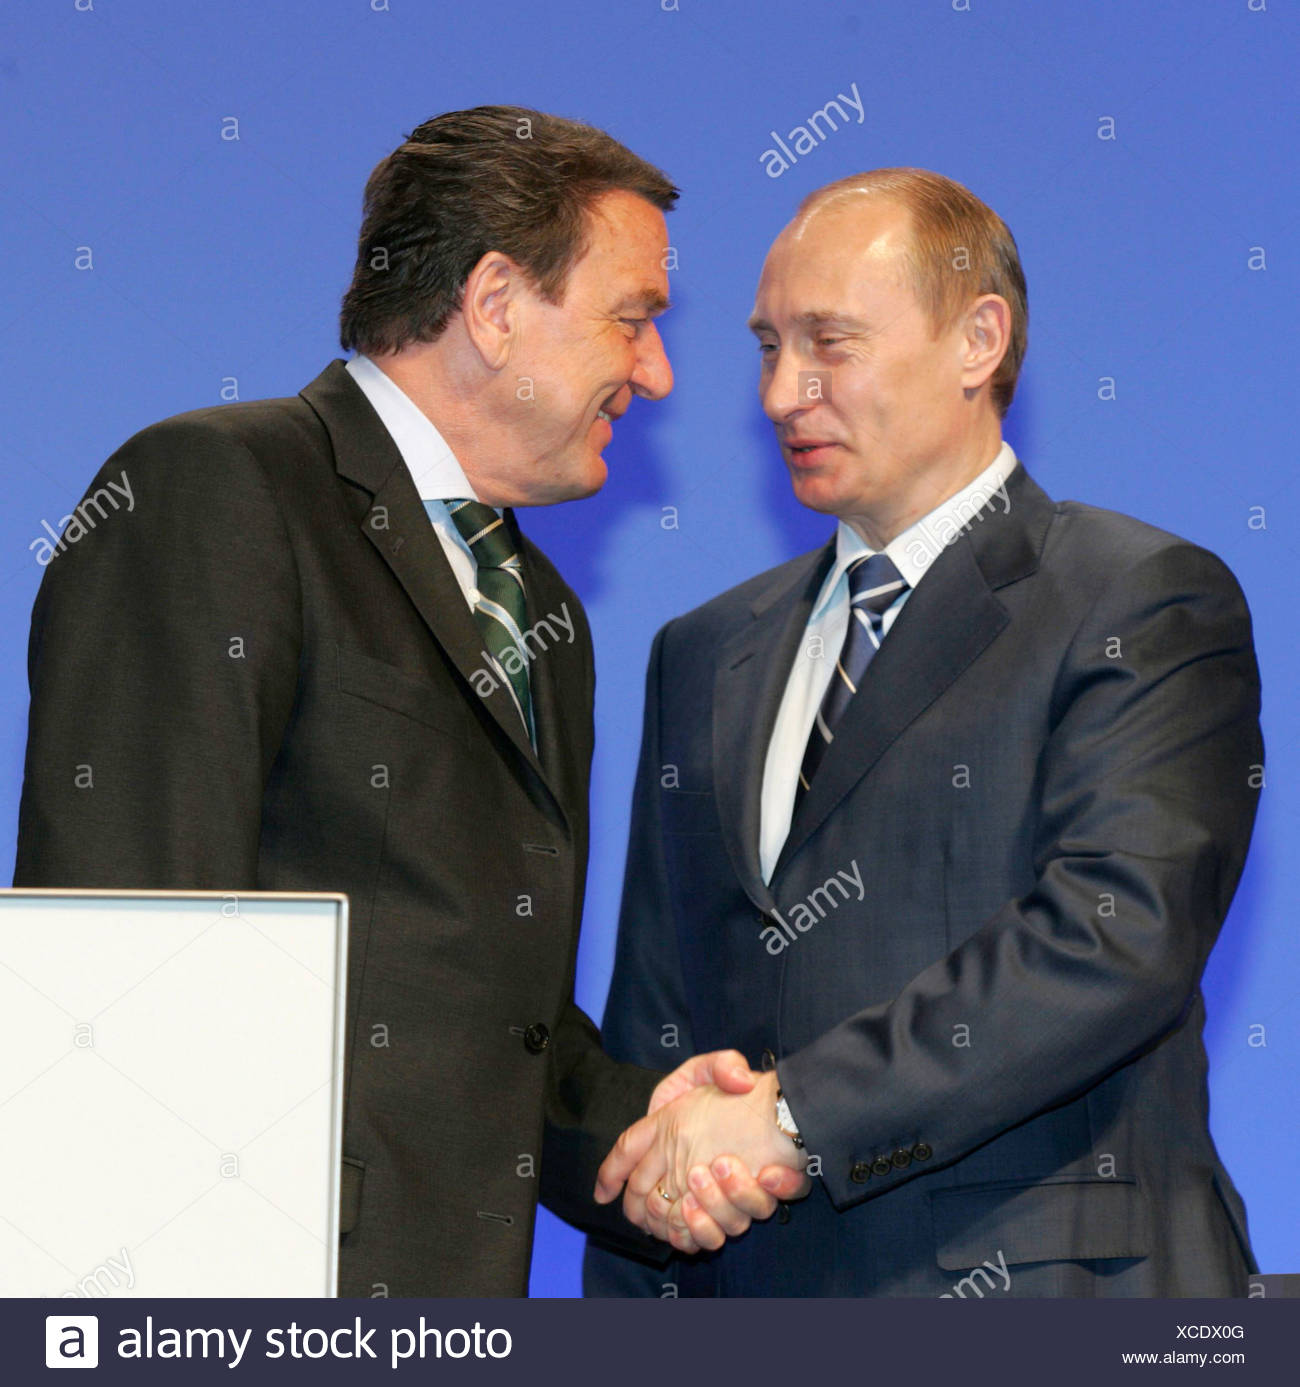 G Schroeder V Putin Stock Photo 283047536 Alamy